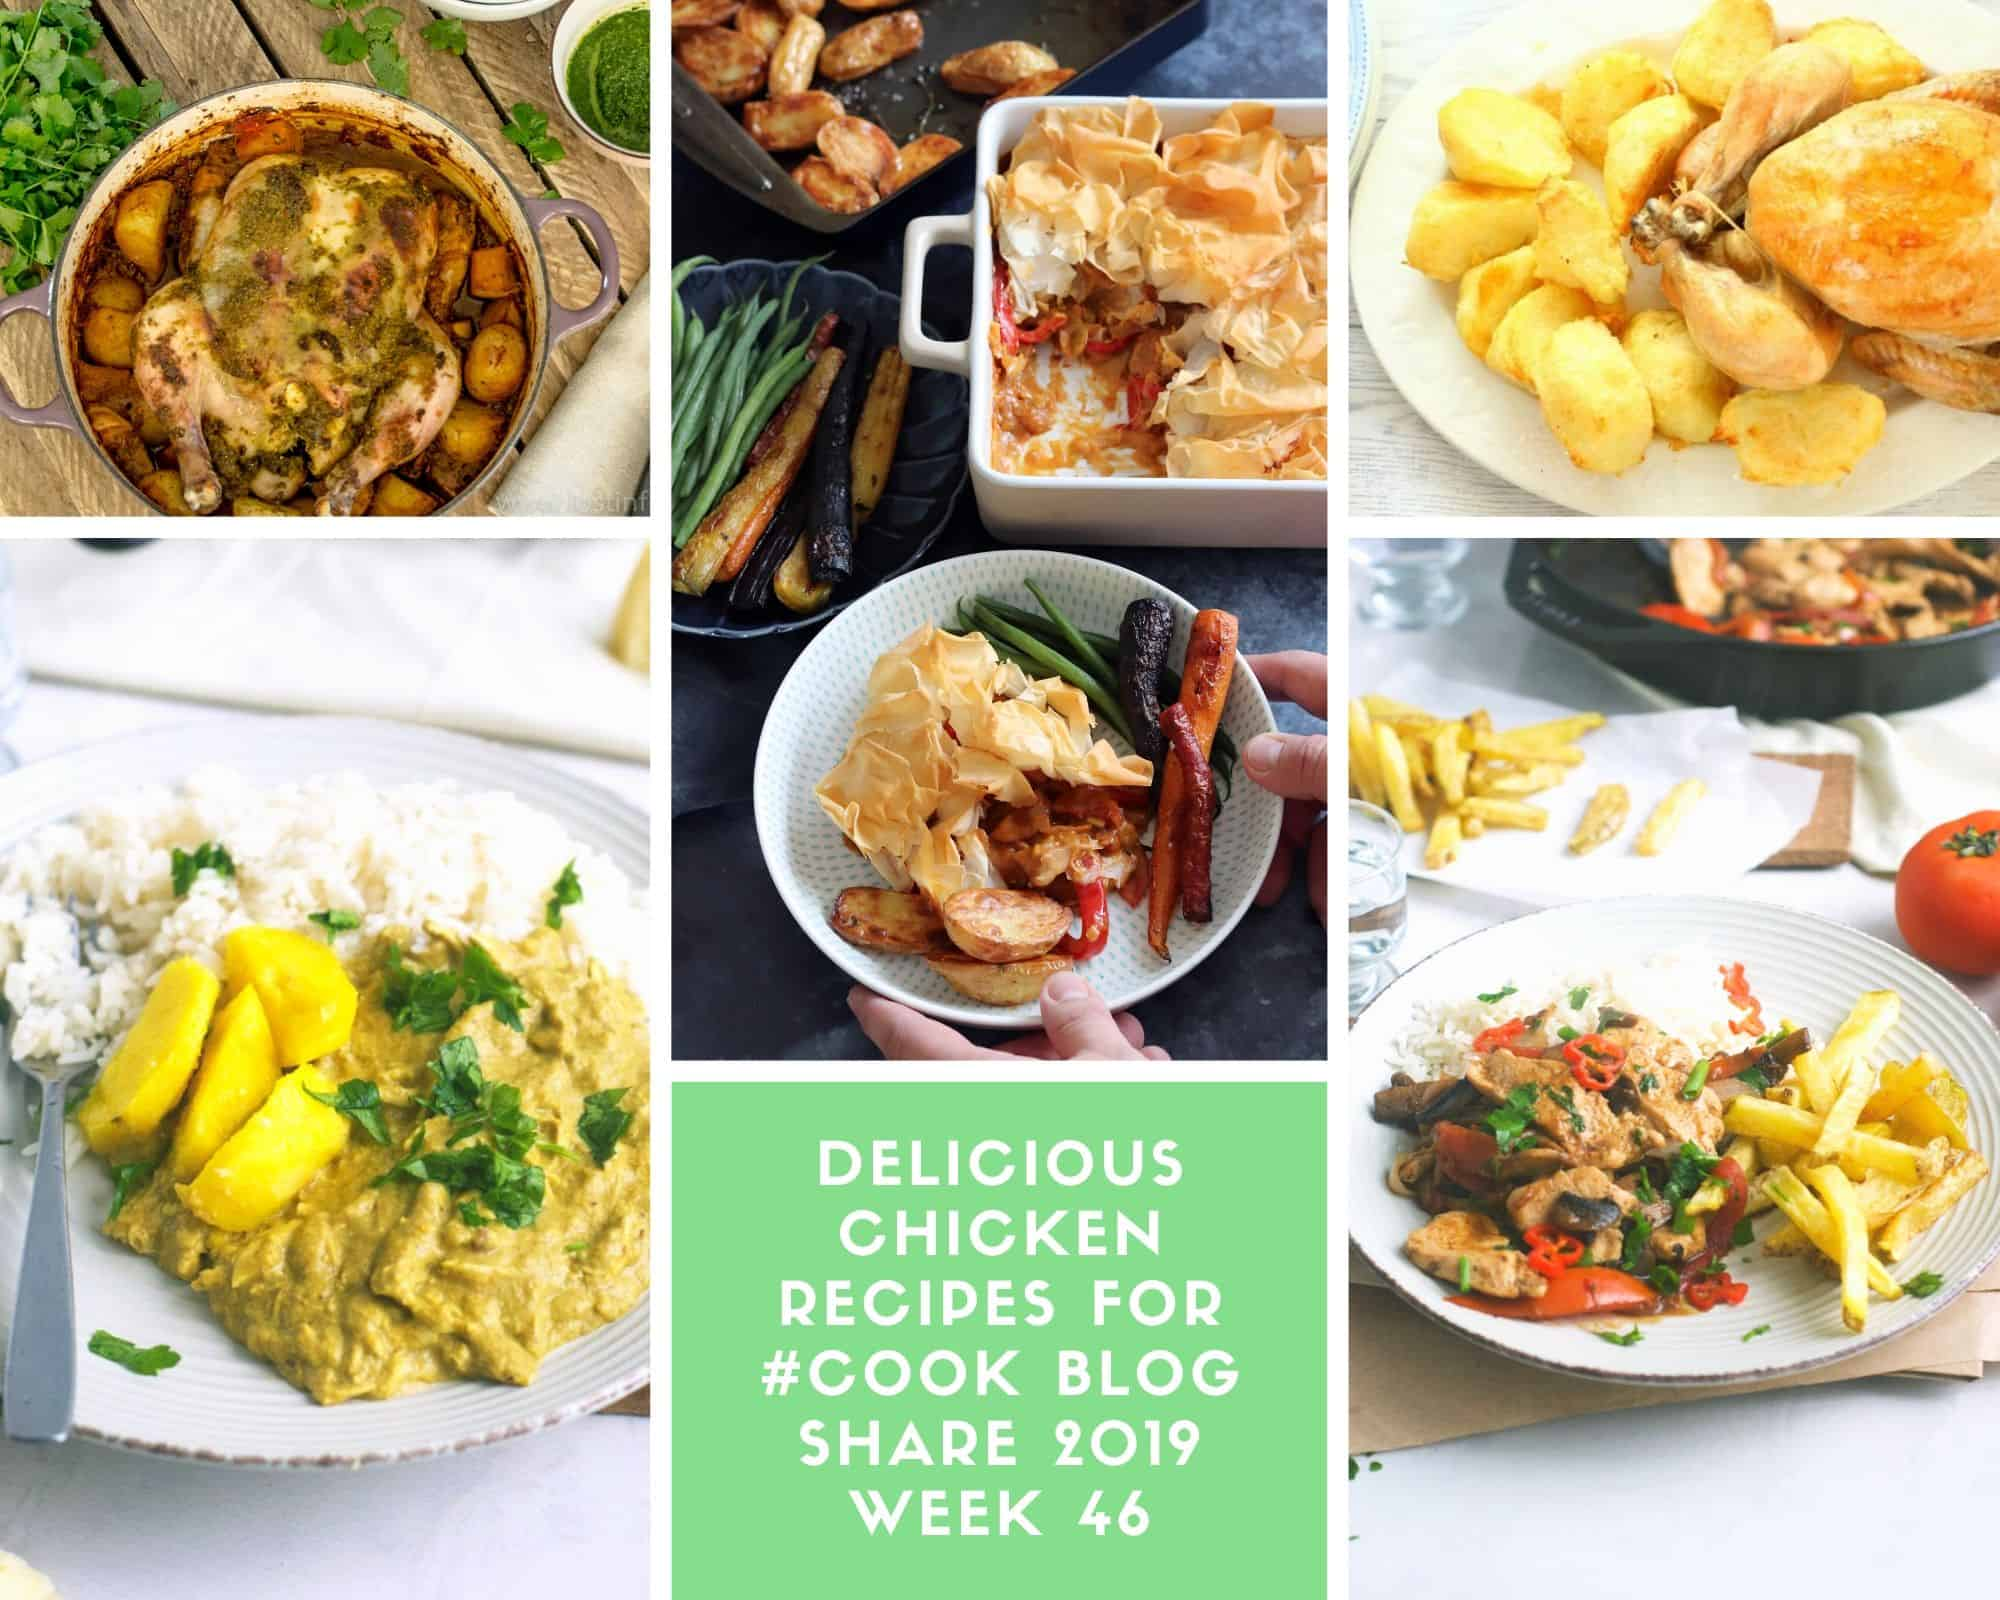 Collage of Chicken Recipes #CookBlogShare 2019 Week 46 Chicken Recipes